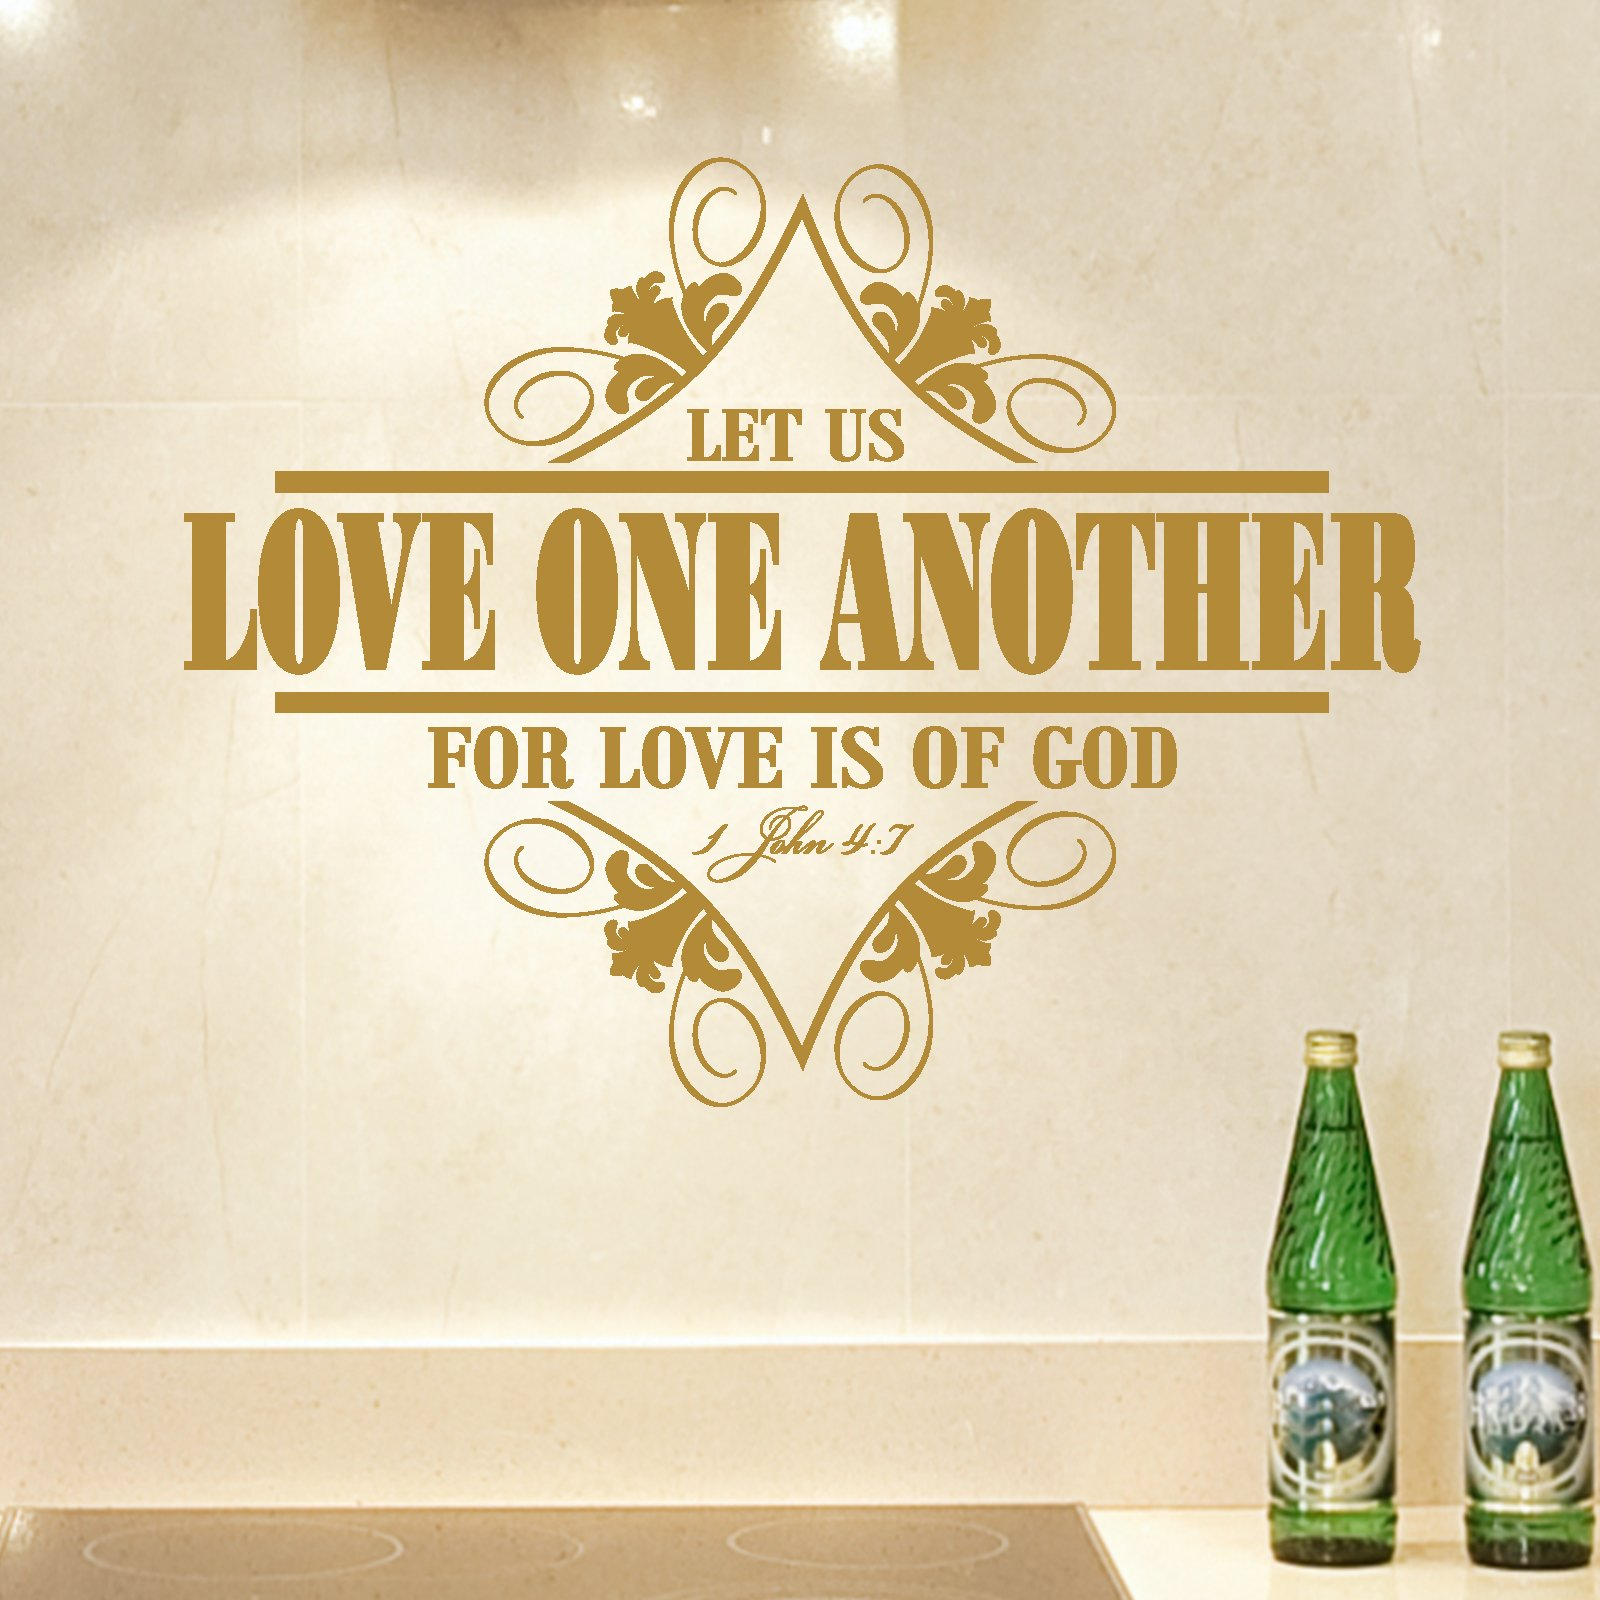 Love One Another Quotes Sayings: Love One Another Religious Quote Wall Sticker